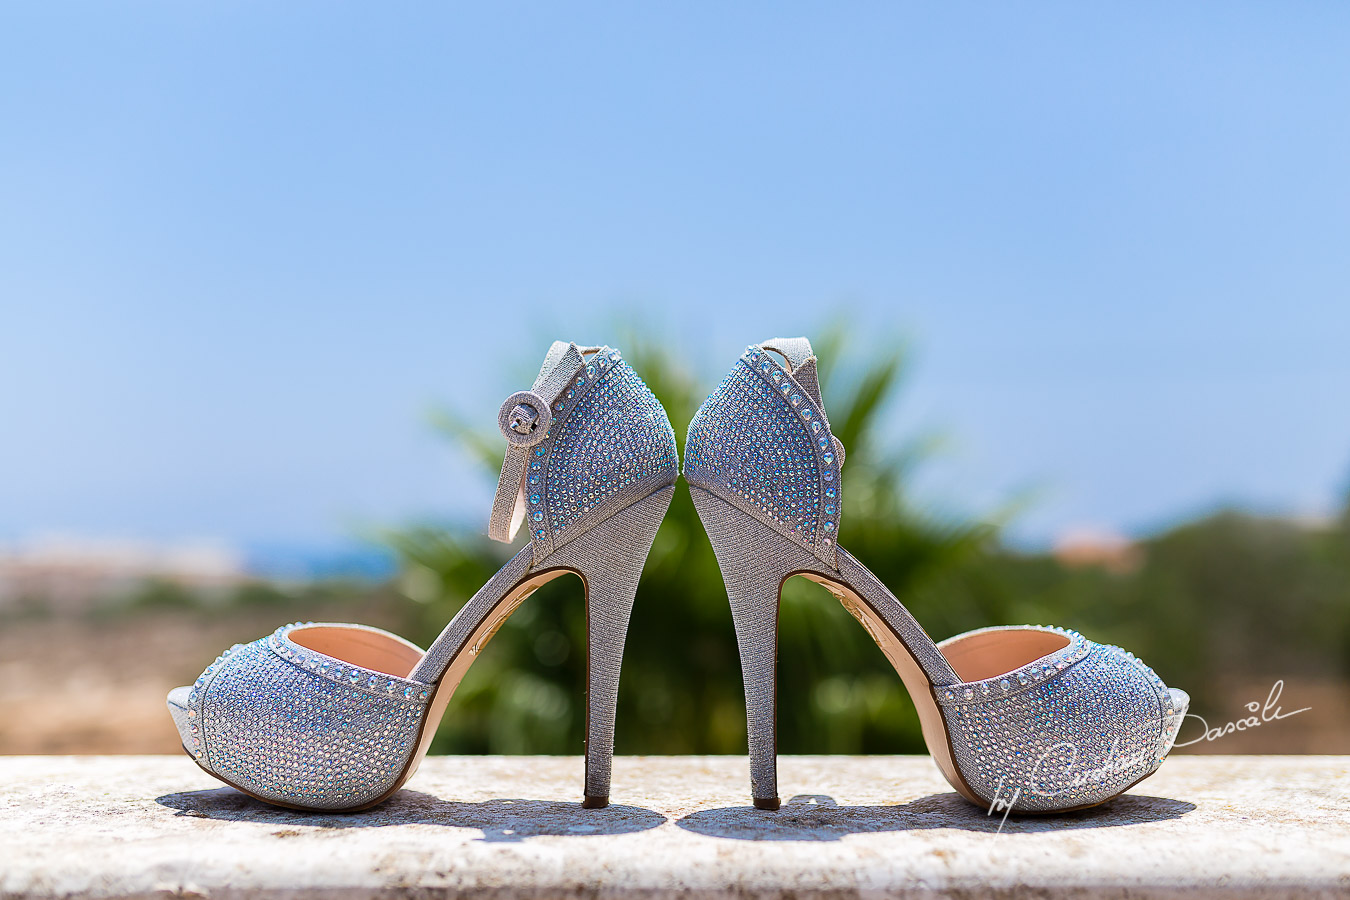 Wedding detailsEverlasting Wedding Photography in Ayia Napa. Photography by Cristian DascaluEverlasting Wedding Photography in Ayia Napa. Photography by Cristian Dascalu